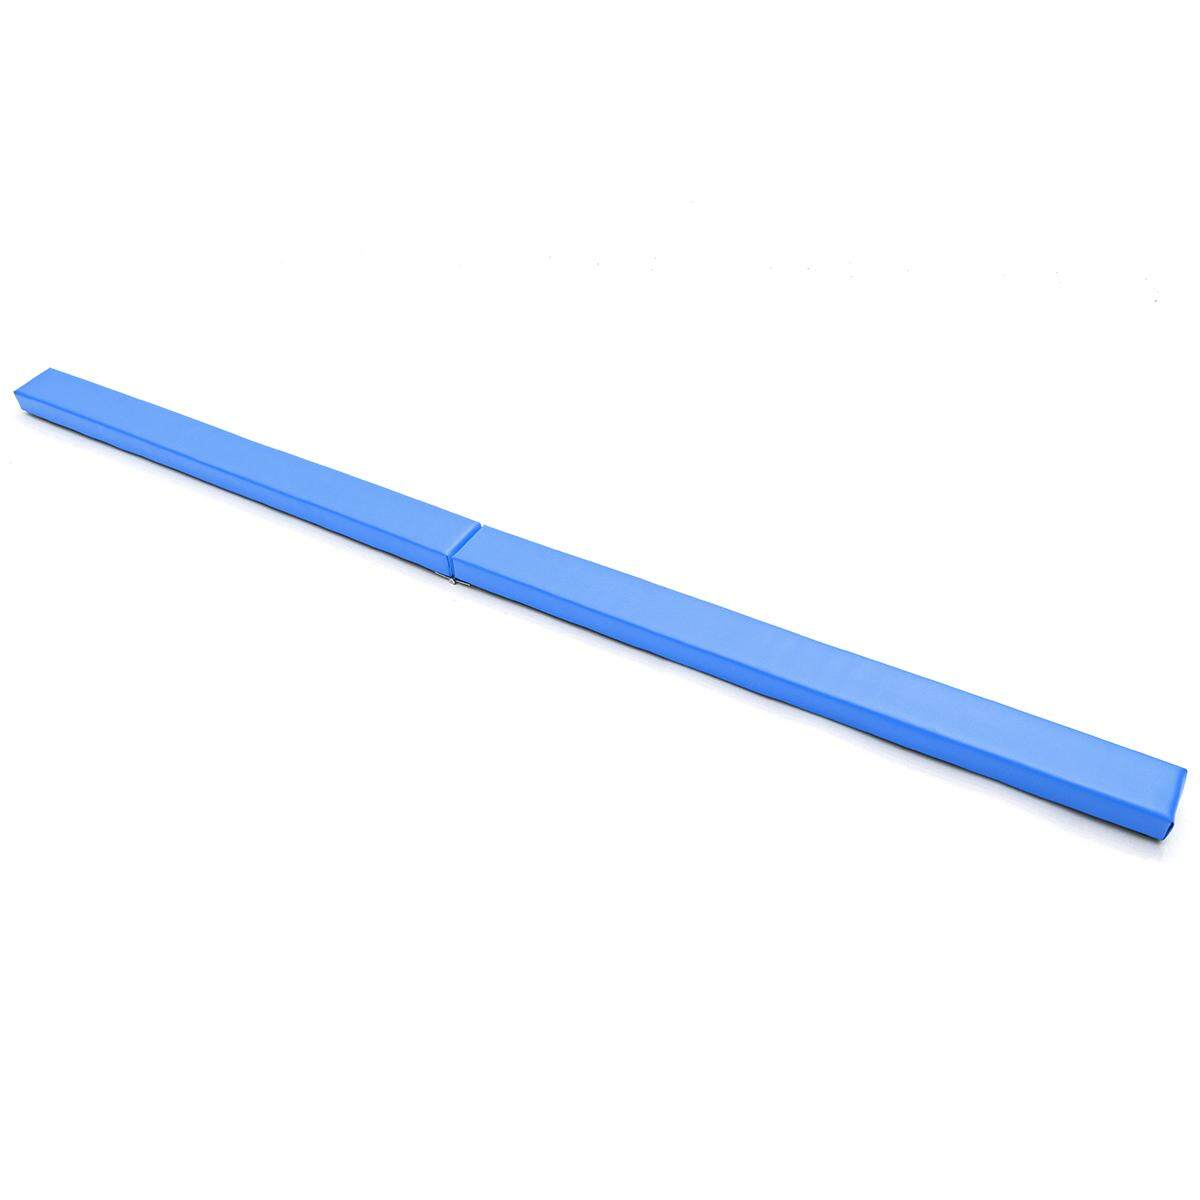 Gymnastic folding training balance beam 240*10*6.5cm - intl